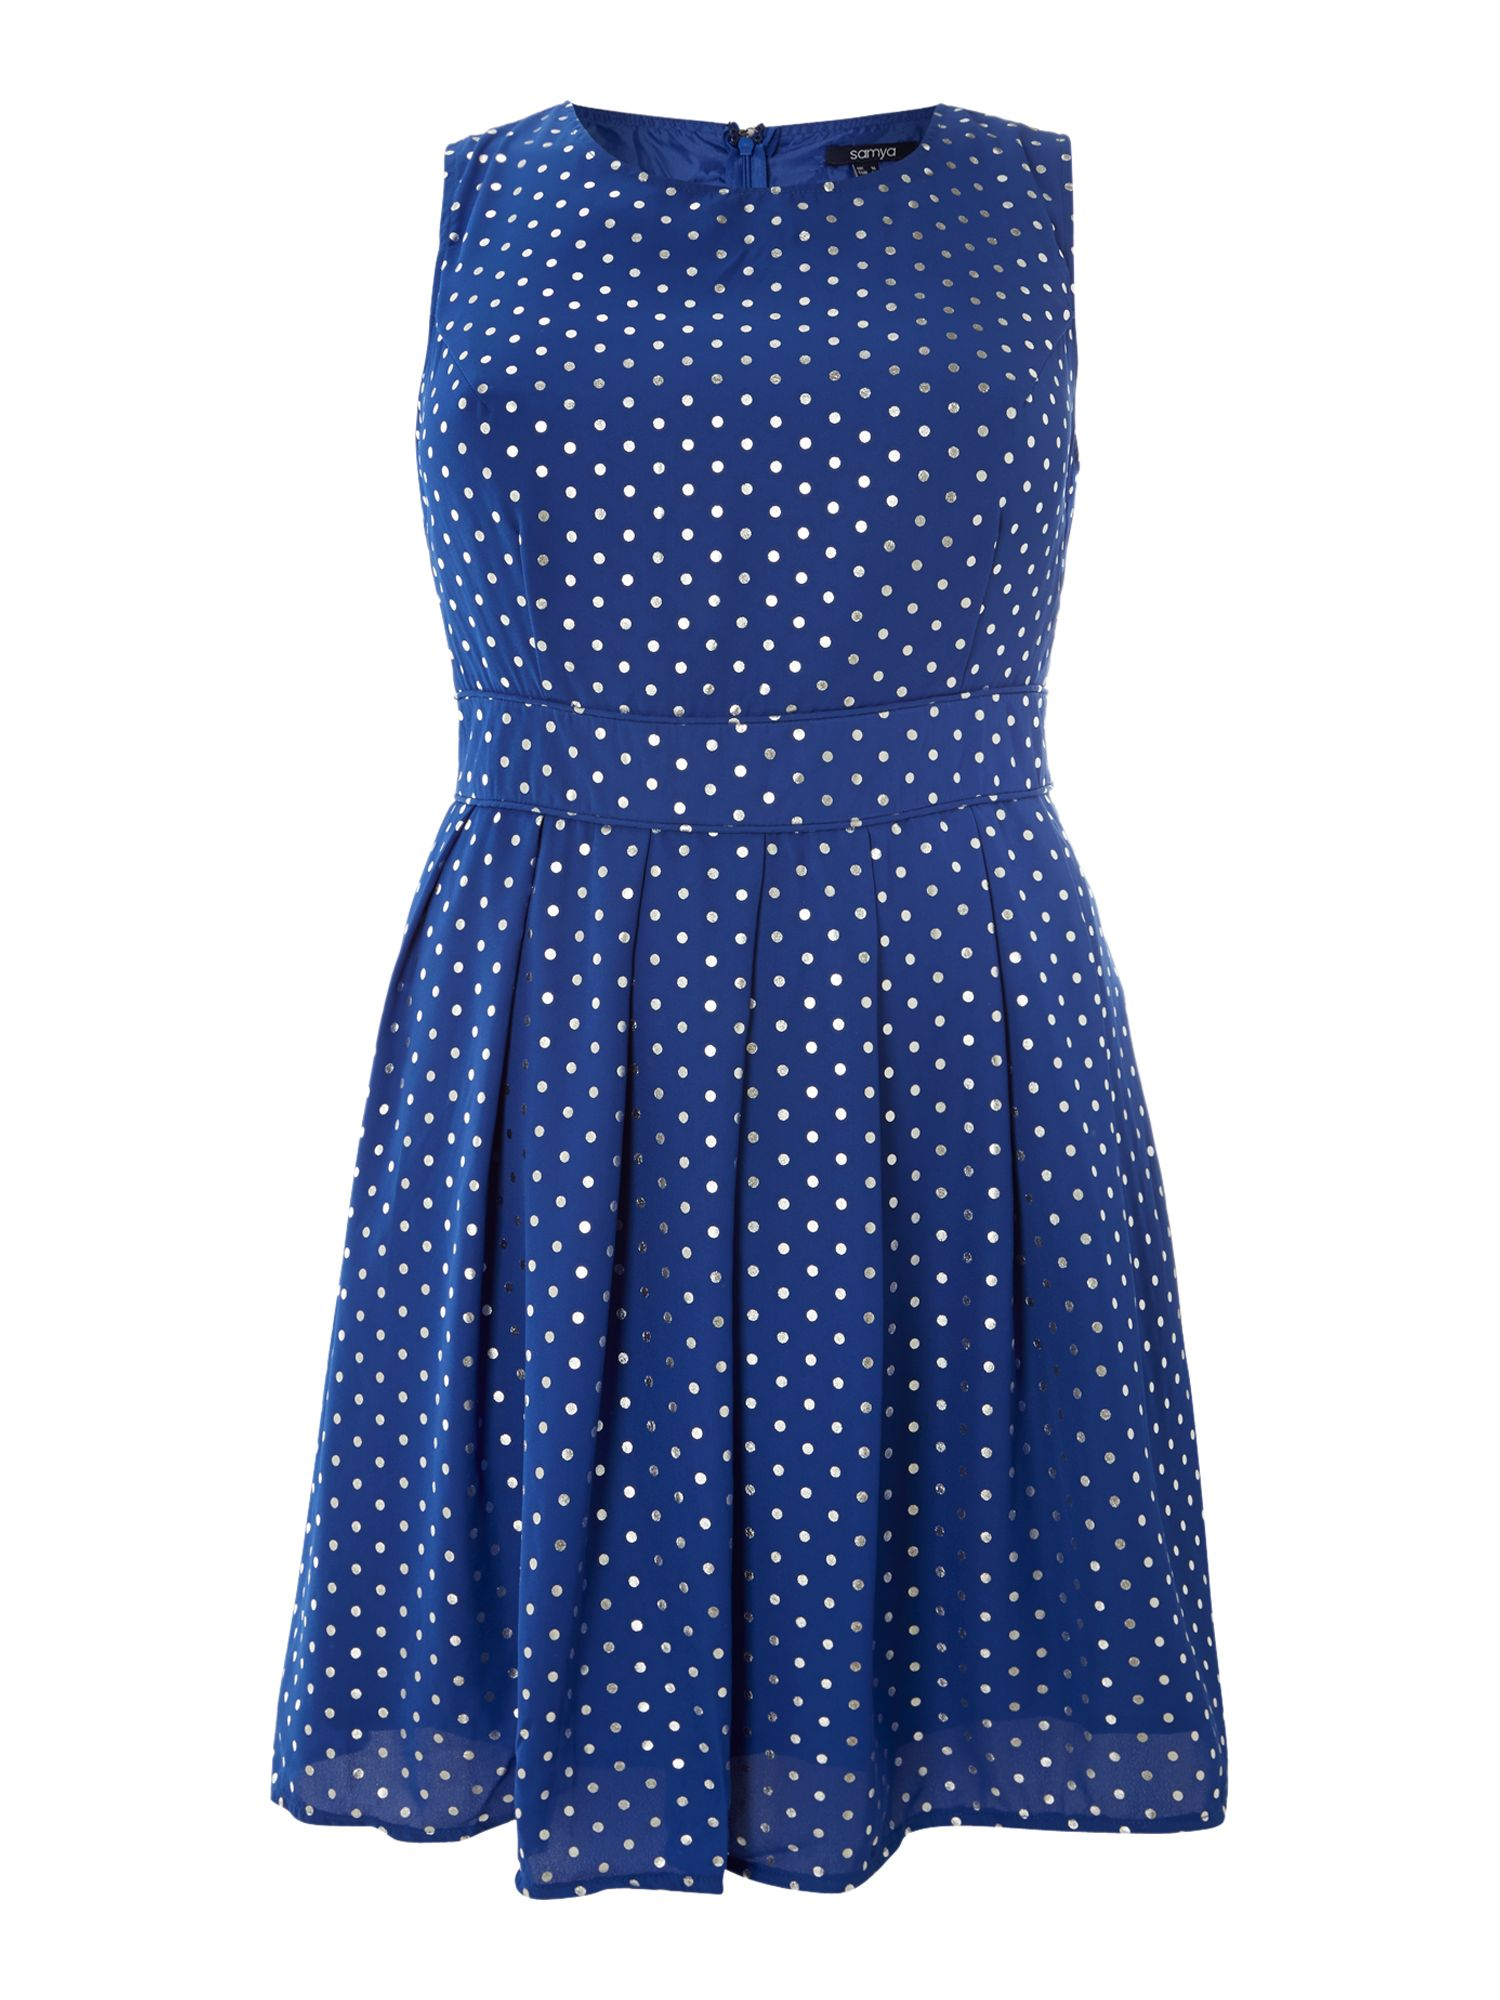 Metallic polka dot dress